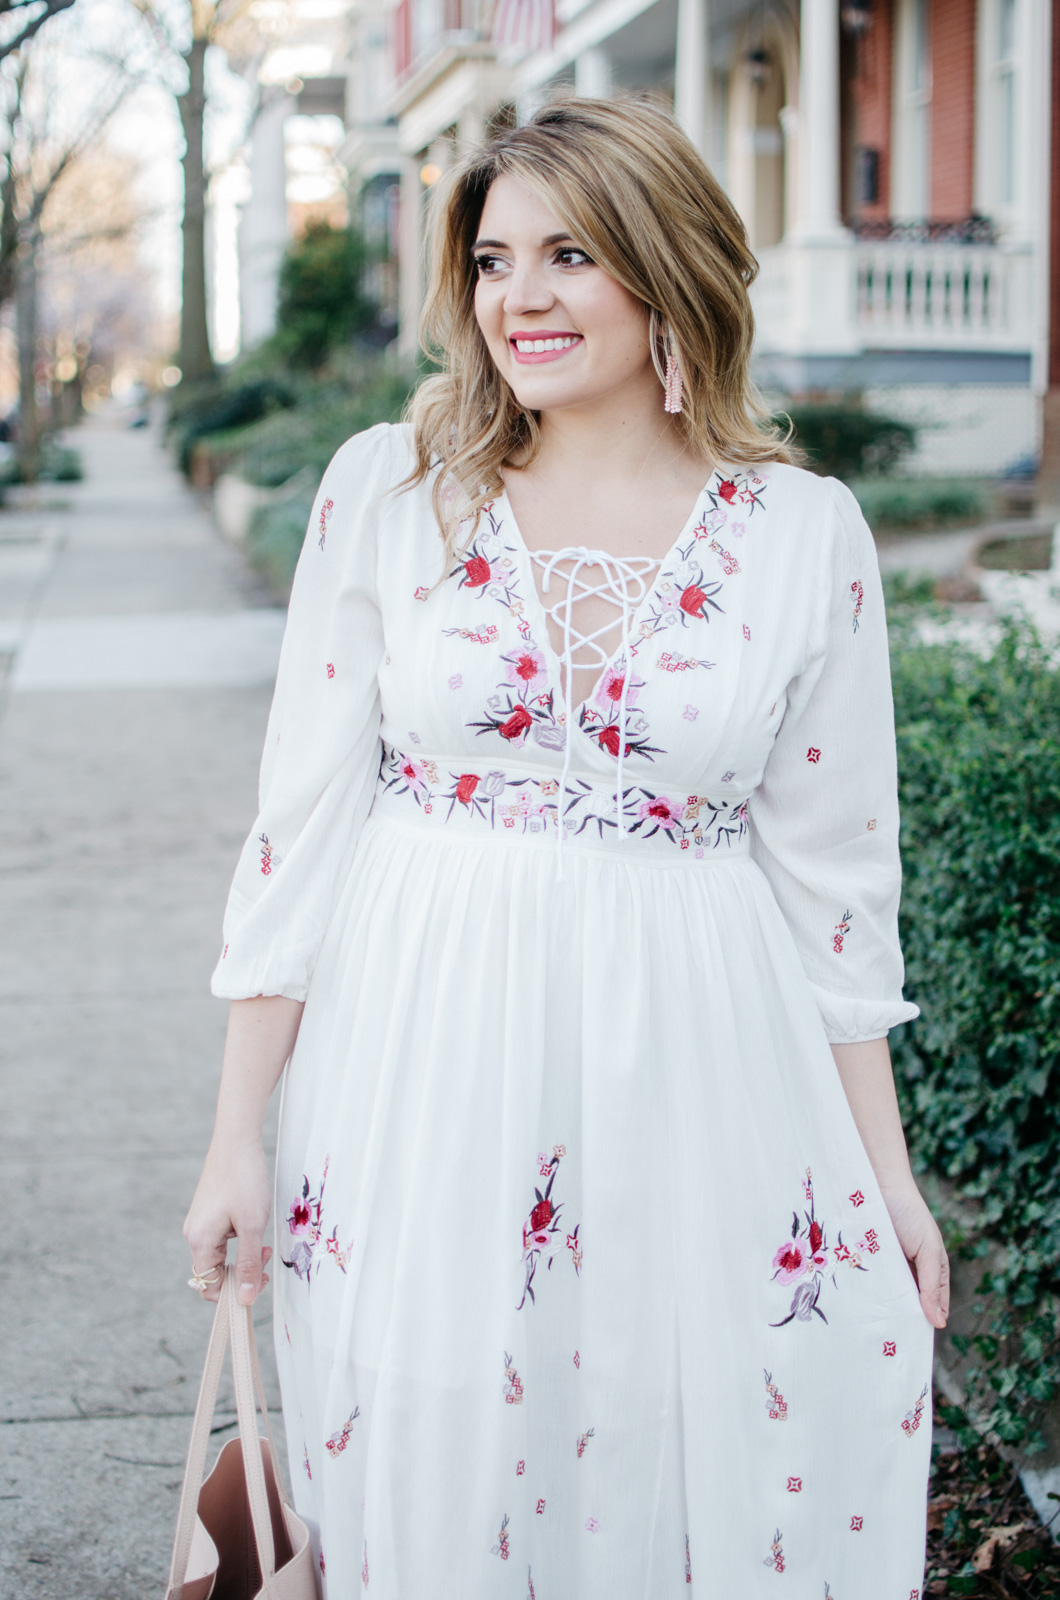 spring boho outfit - embroidered maxi dress outfit - Click through for more cute Spring outfits or to shop this look! | www.bylaurenm.com